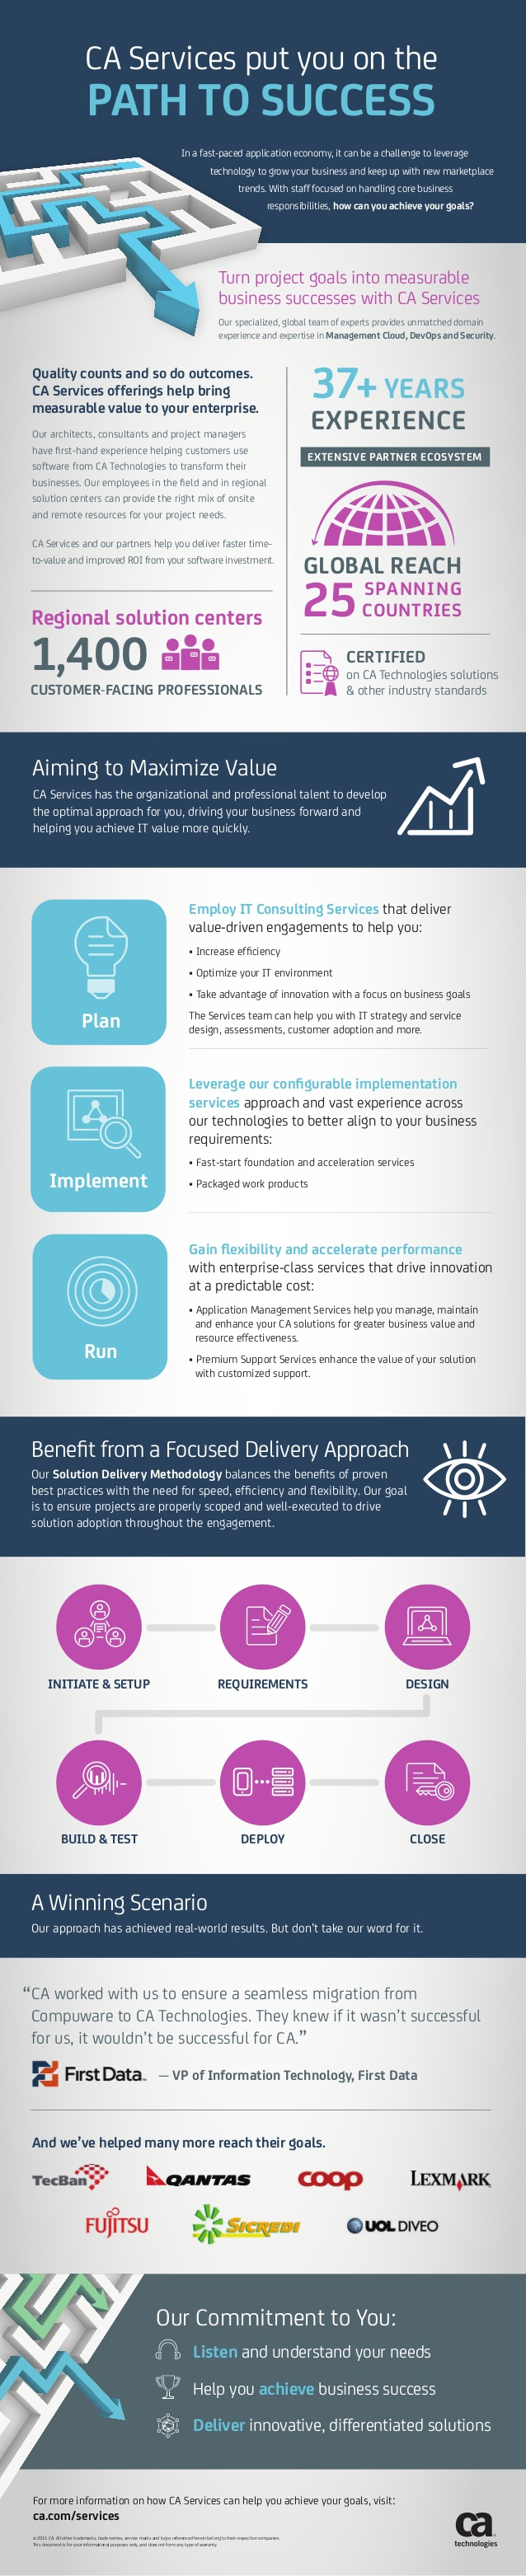 infographic-ca-services-put-you-on-the-path-to-success-1-638